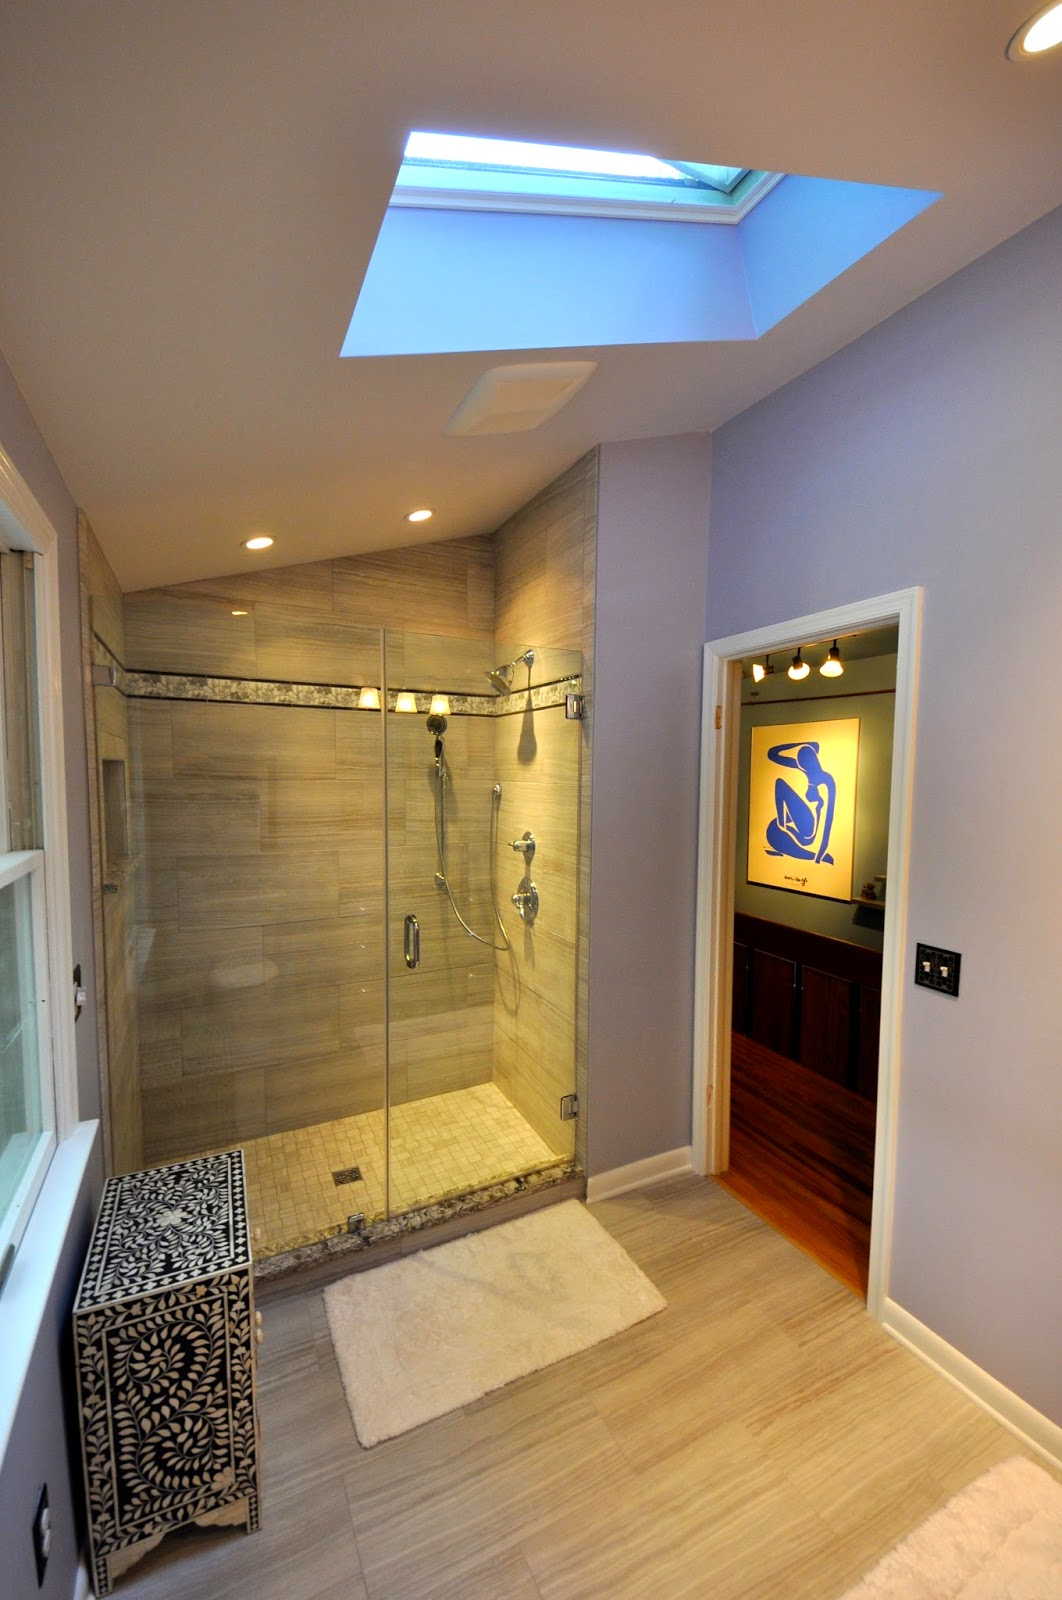 Bathroom Remodel York Pa eric marks general contracting: bathroom expansion & remodel